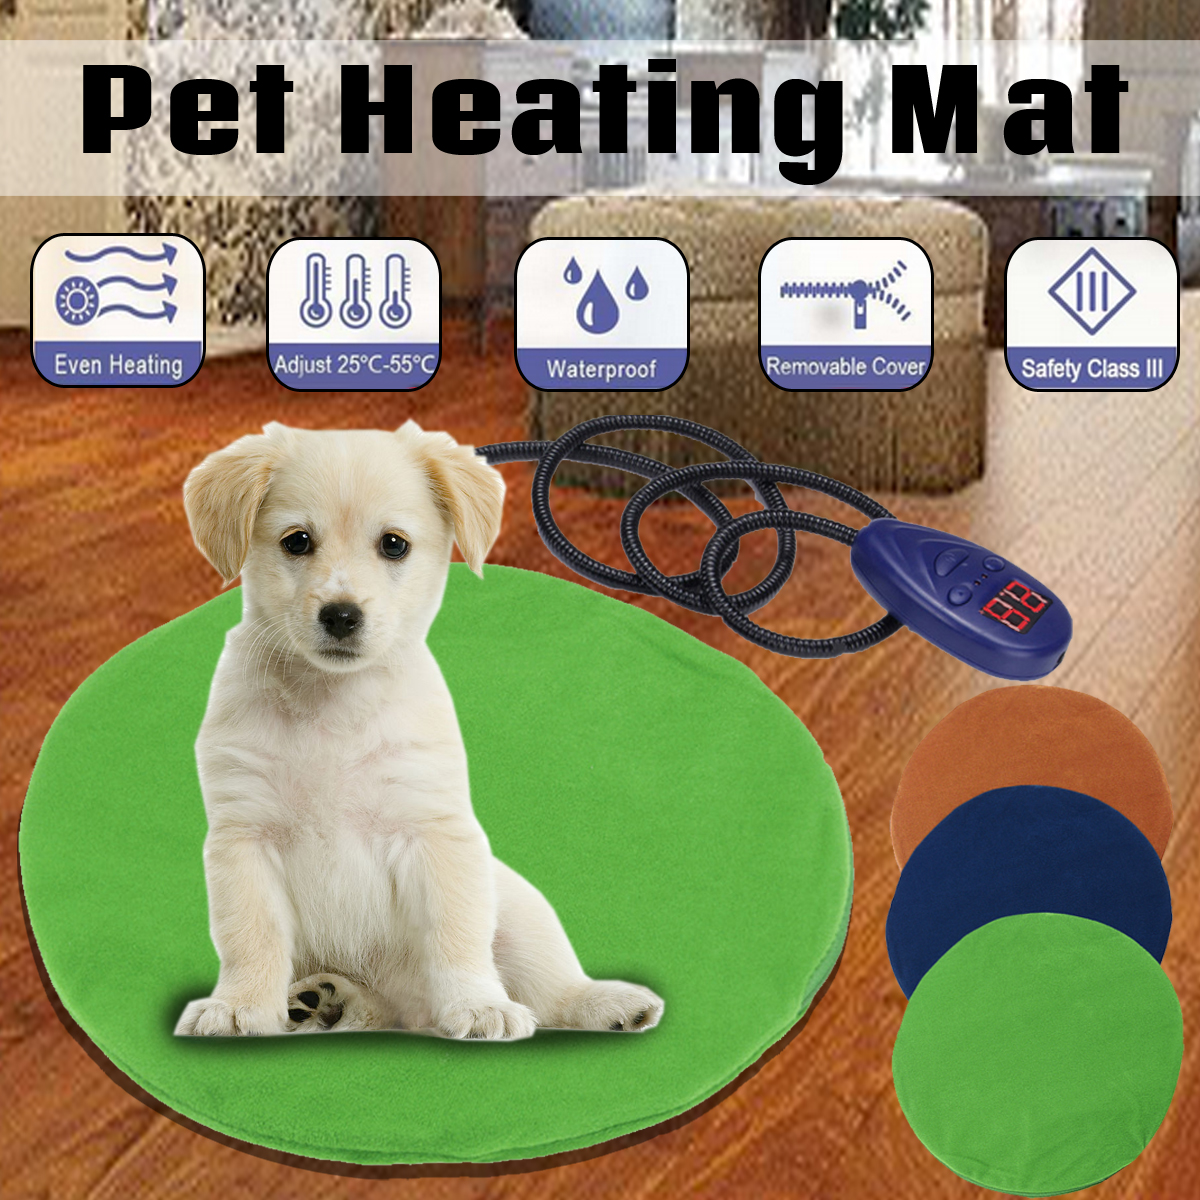 12V Pet Dog Kitten Waterproof Electric Heating Heated Pad Mat Thermal Protection Bed Temperature Adjustable Winemaking Mat 30cm12V Pet Dog Kitten Waterproof Electric Heating Heated Pad Mat Thermal Protection Bed Temperature Adjustable Winemaking Mat 30cm